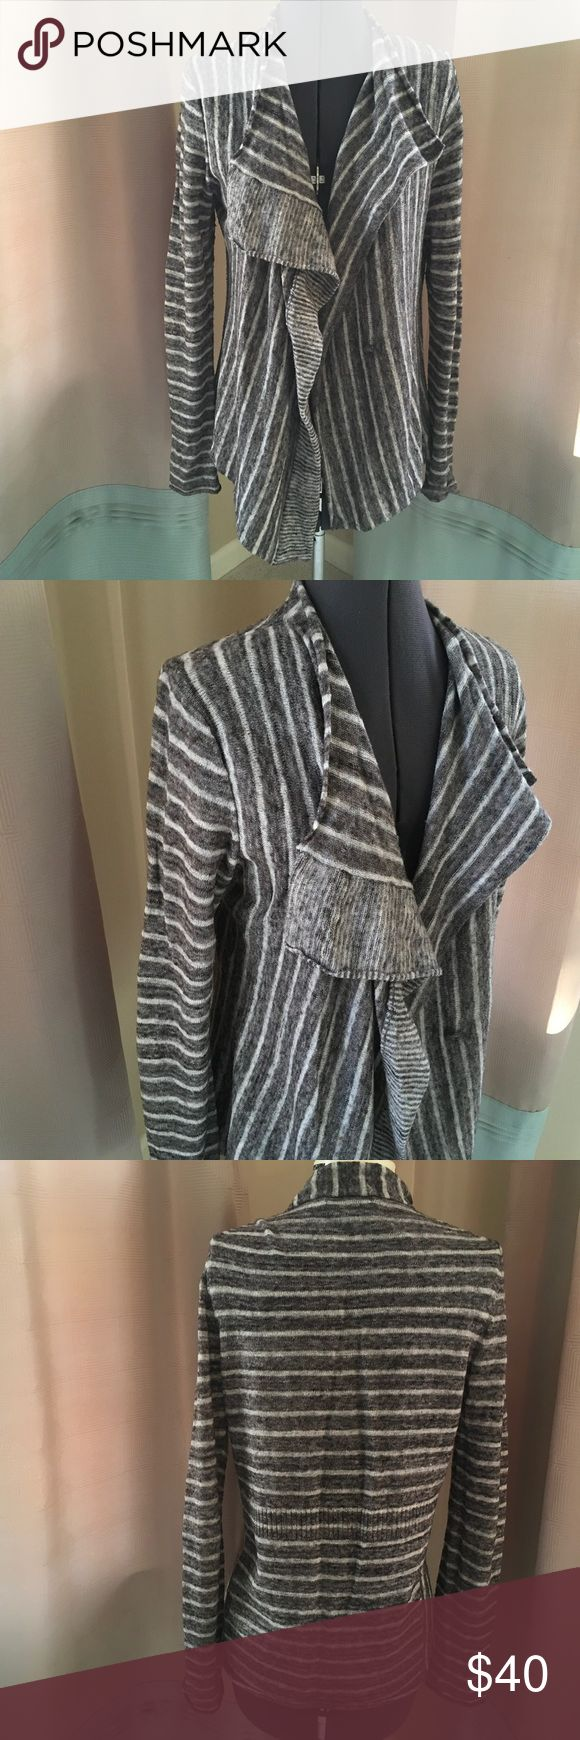 Banana Republic Long Gray/White Shrug Great light sweater layer of gray and white stripes. Wool/poly/nylon/alpaca blend. Elegantly drapes into ruffles in the front. In like-new condition. Banana Republic Sweaters Shrugs & Ponchos